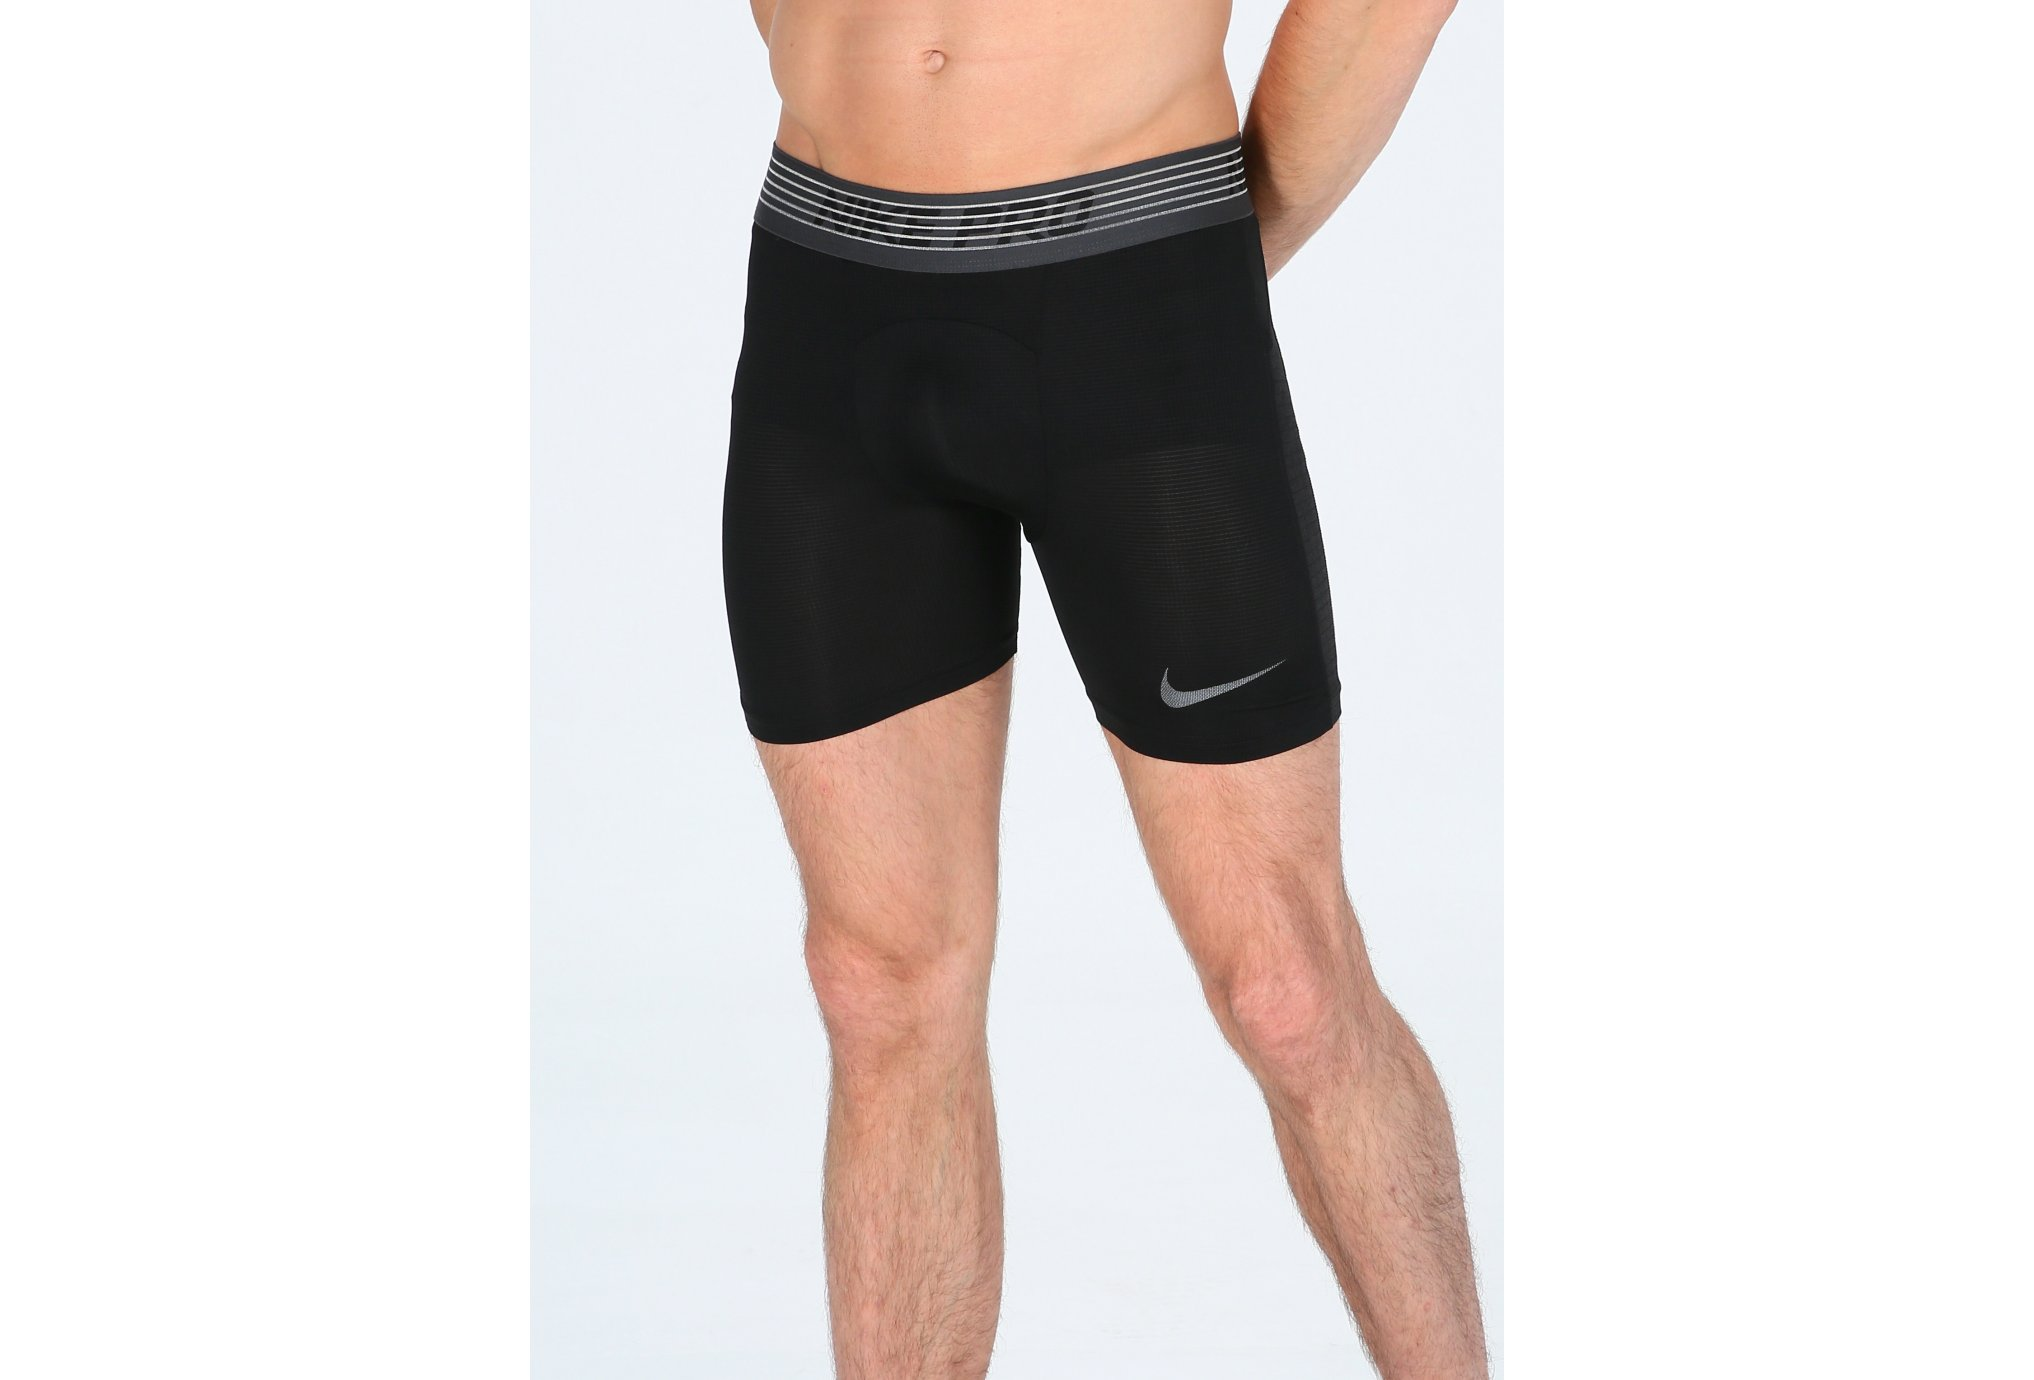 Nike Mallas cortas Pro Breathe vêtement running homme